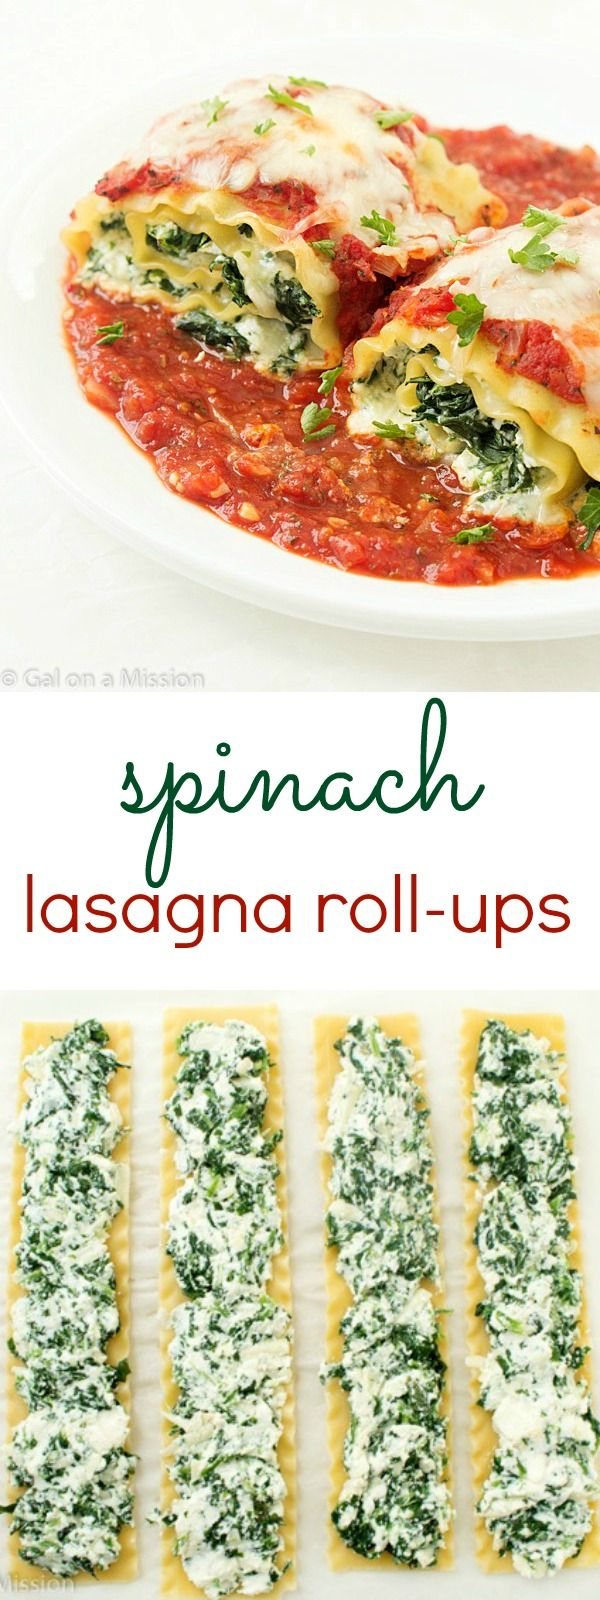 Spinach Lasagna Roll Up Recipe An Incredibly Easy Weeknight Or Weekend Dinner The Entire